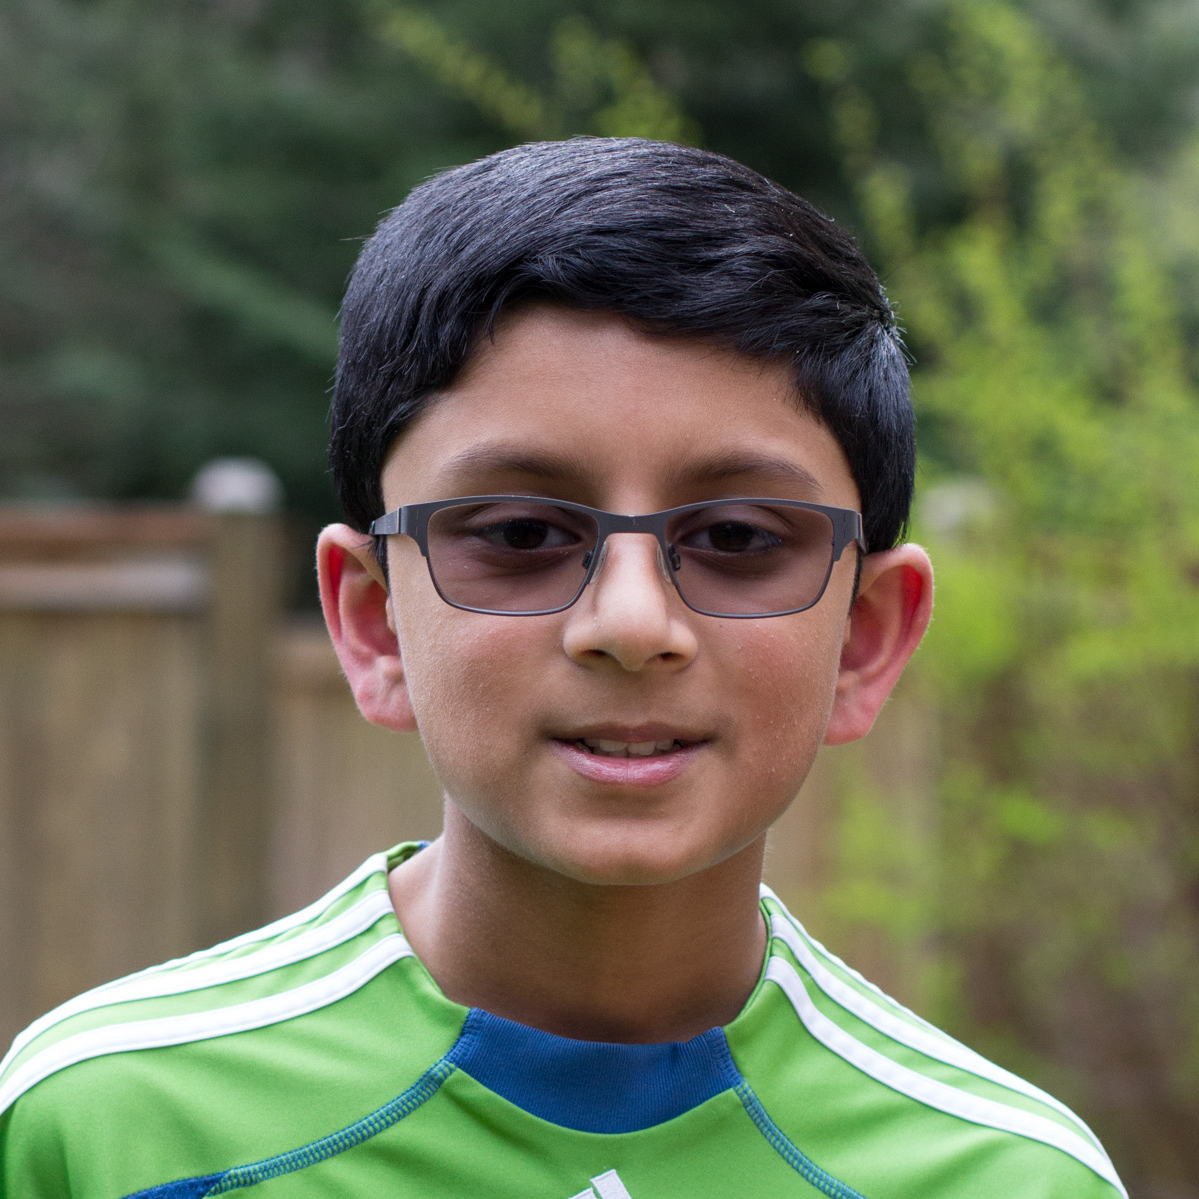 Neil is a sixth grade student at the Odle Middle School in Bellevue. He also attends Interlake High School, taking Gifted IB Pre-calculus.